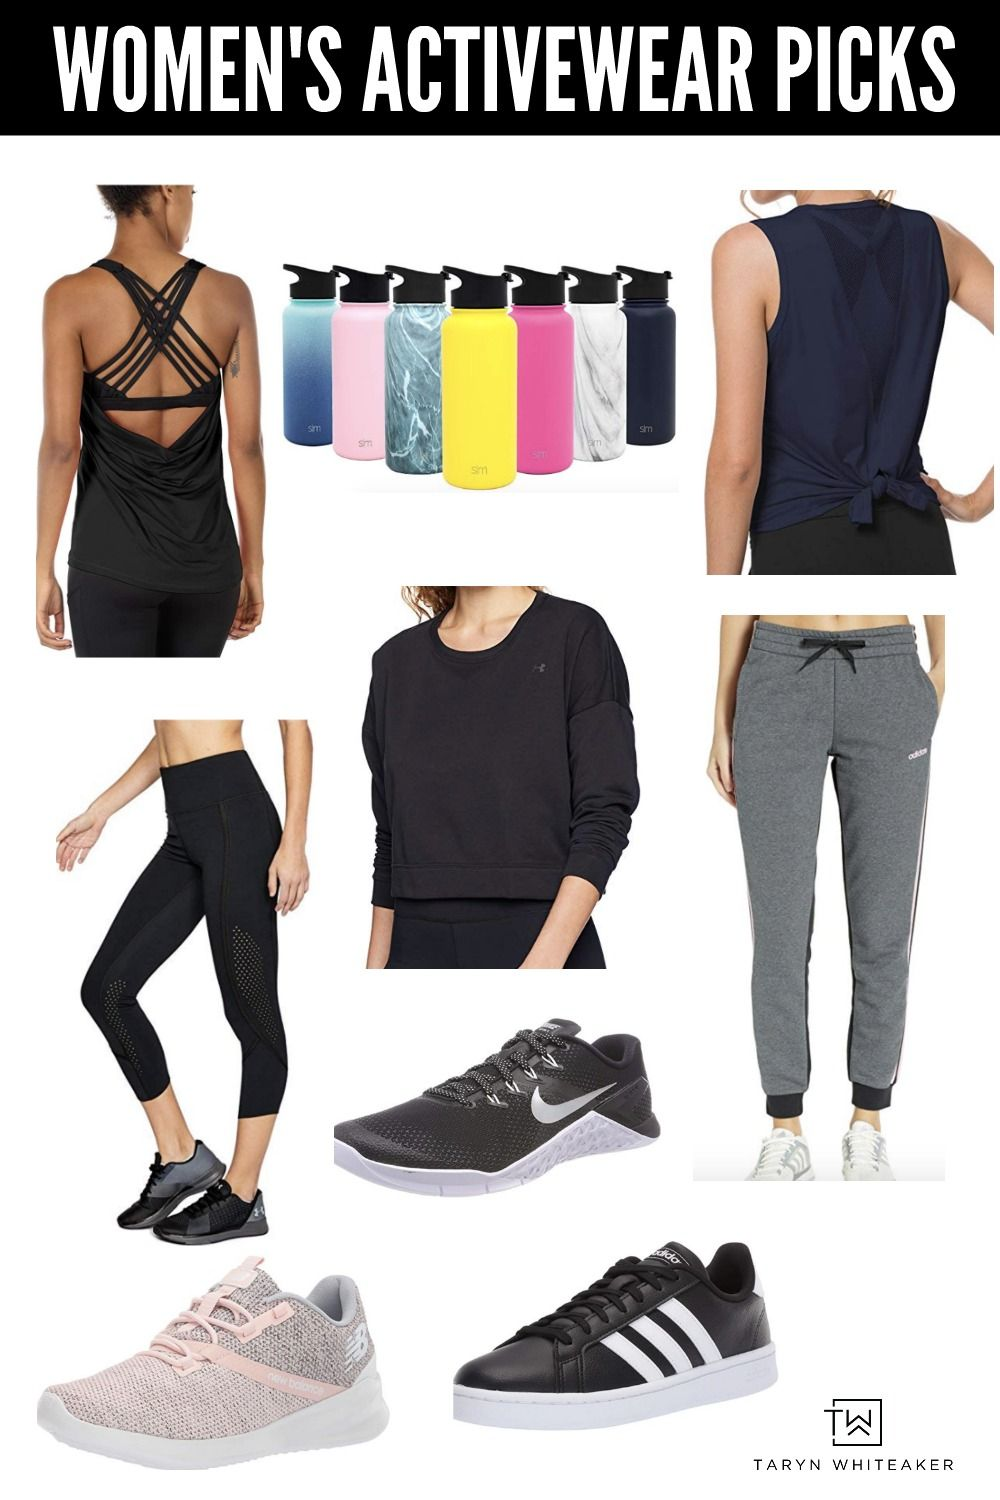 Amazon Prime Day 2019 Amazon prime day, Active wear for